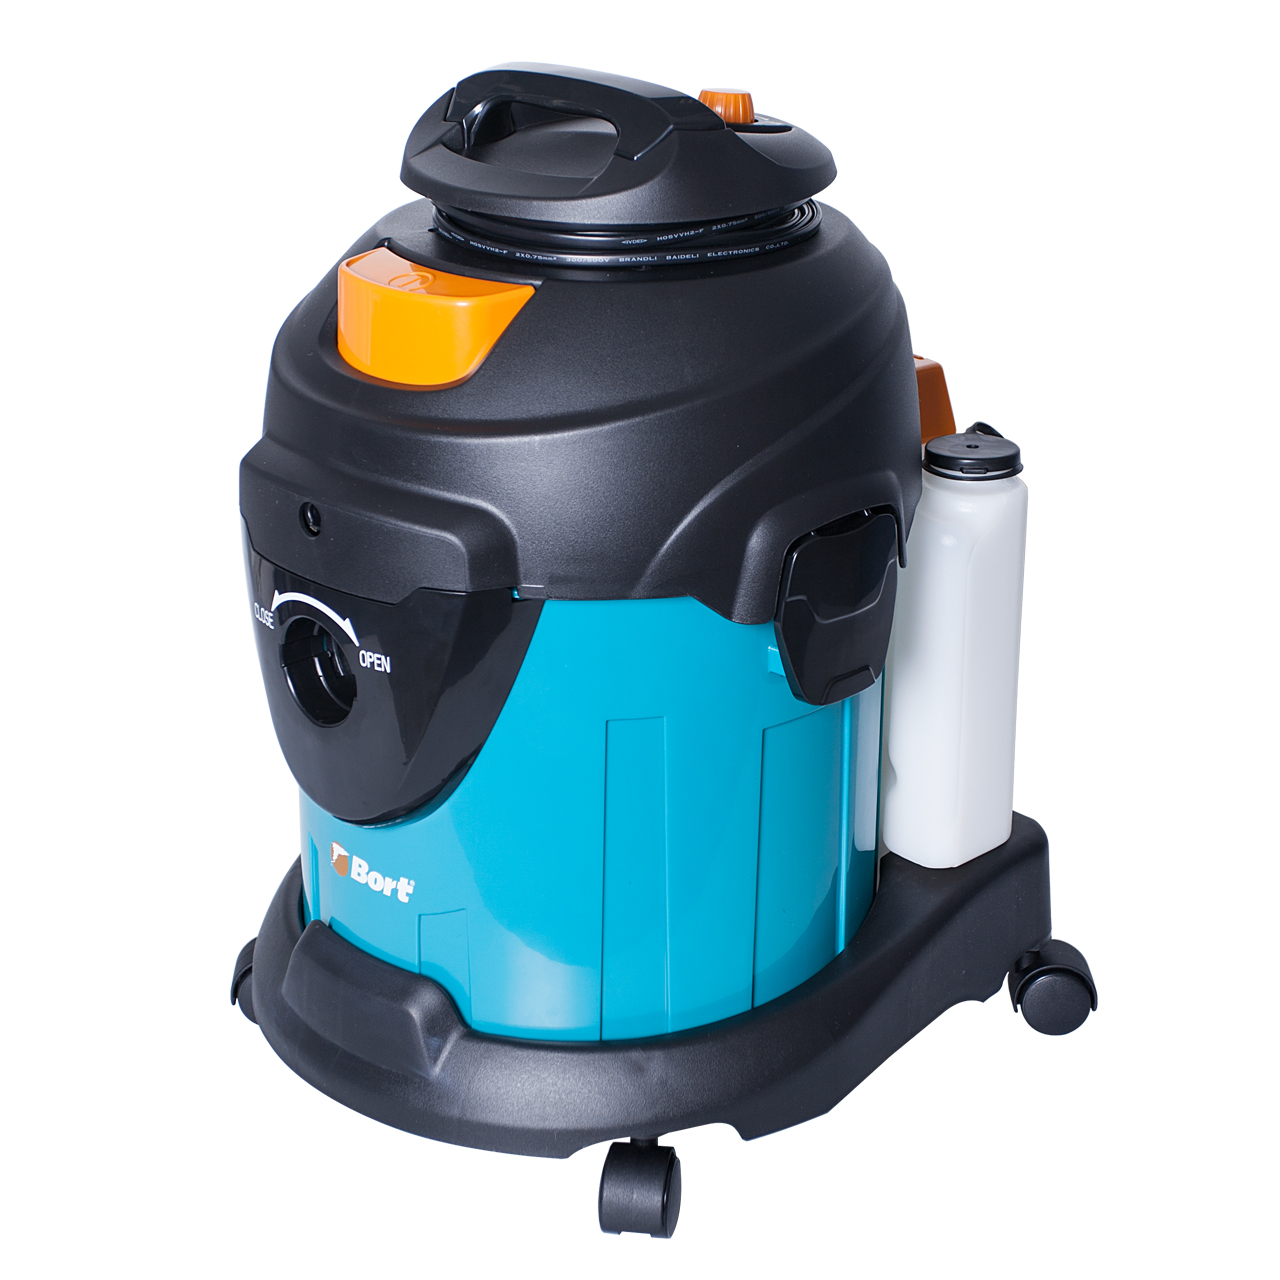 Пылесос электрический Bort BSS 1415 W-in Vacuum Cleaners from Home Appliances on Aliexpress.com | Alibaba Group